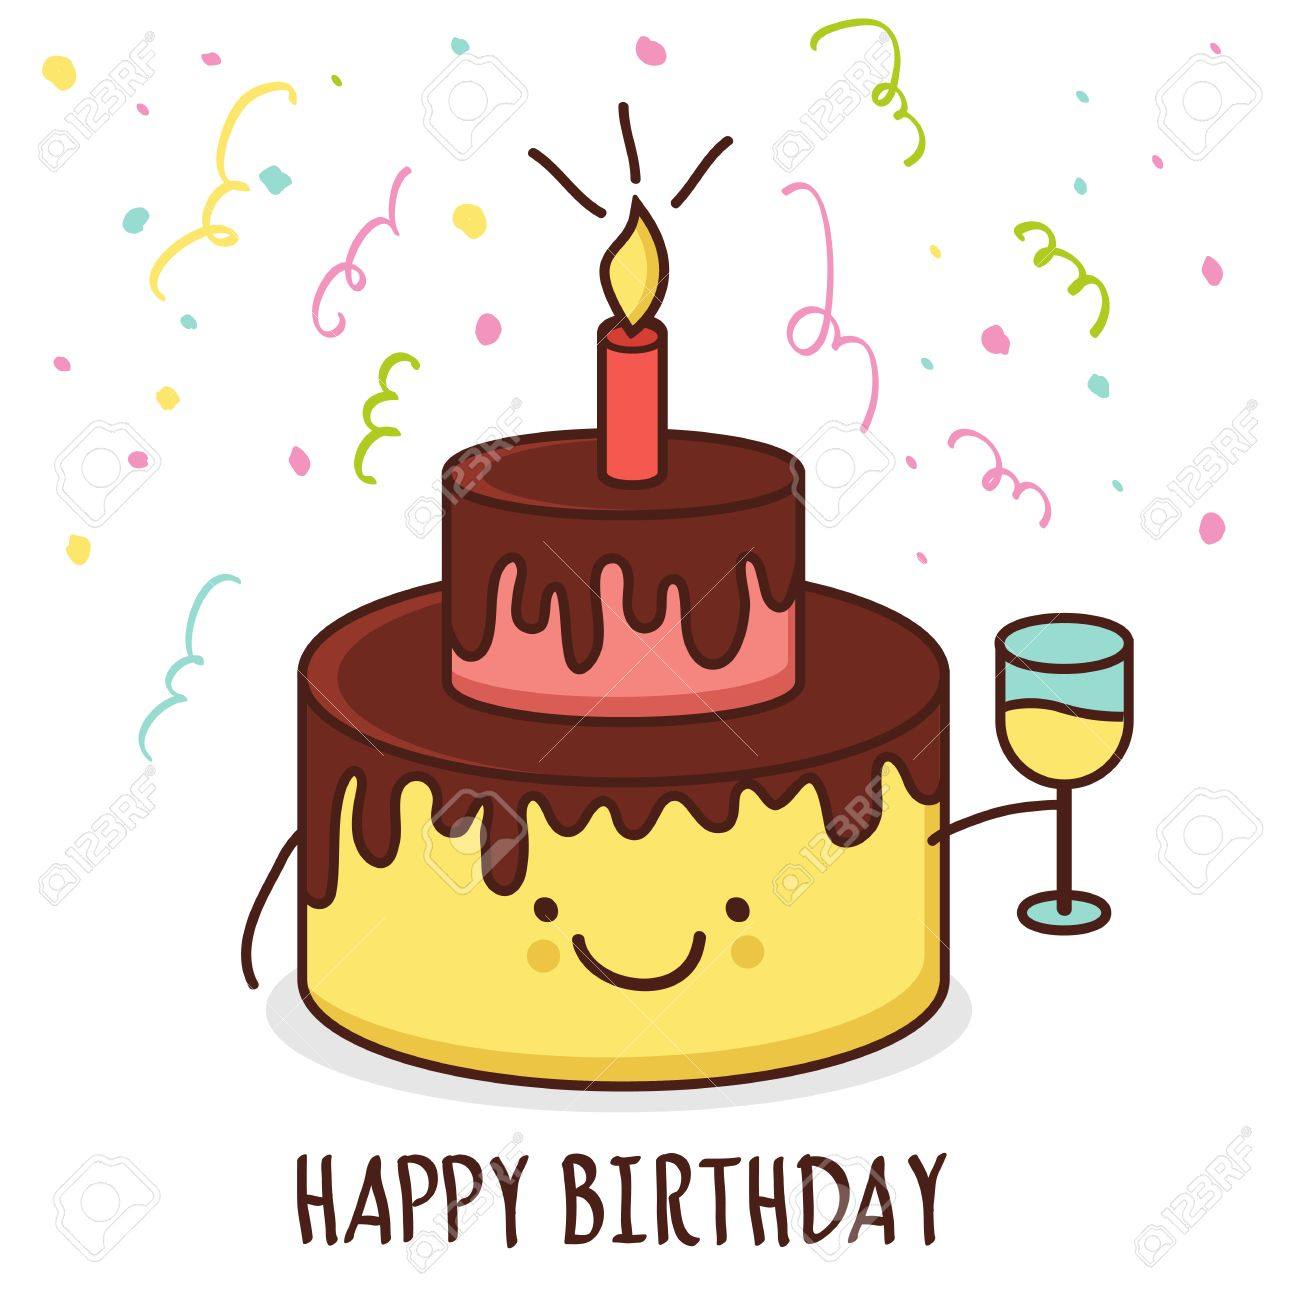 Cute Cartoon Smiling Cake With Glass Of Champagne Vector Illustration Happy Birthday Greeting Card